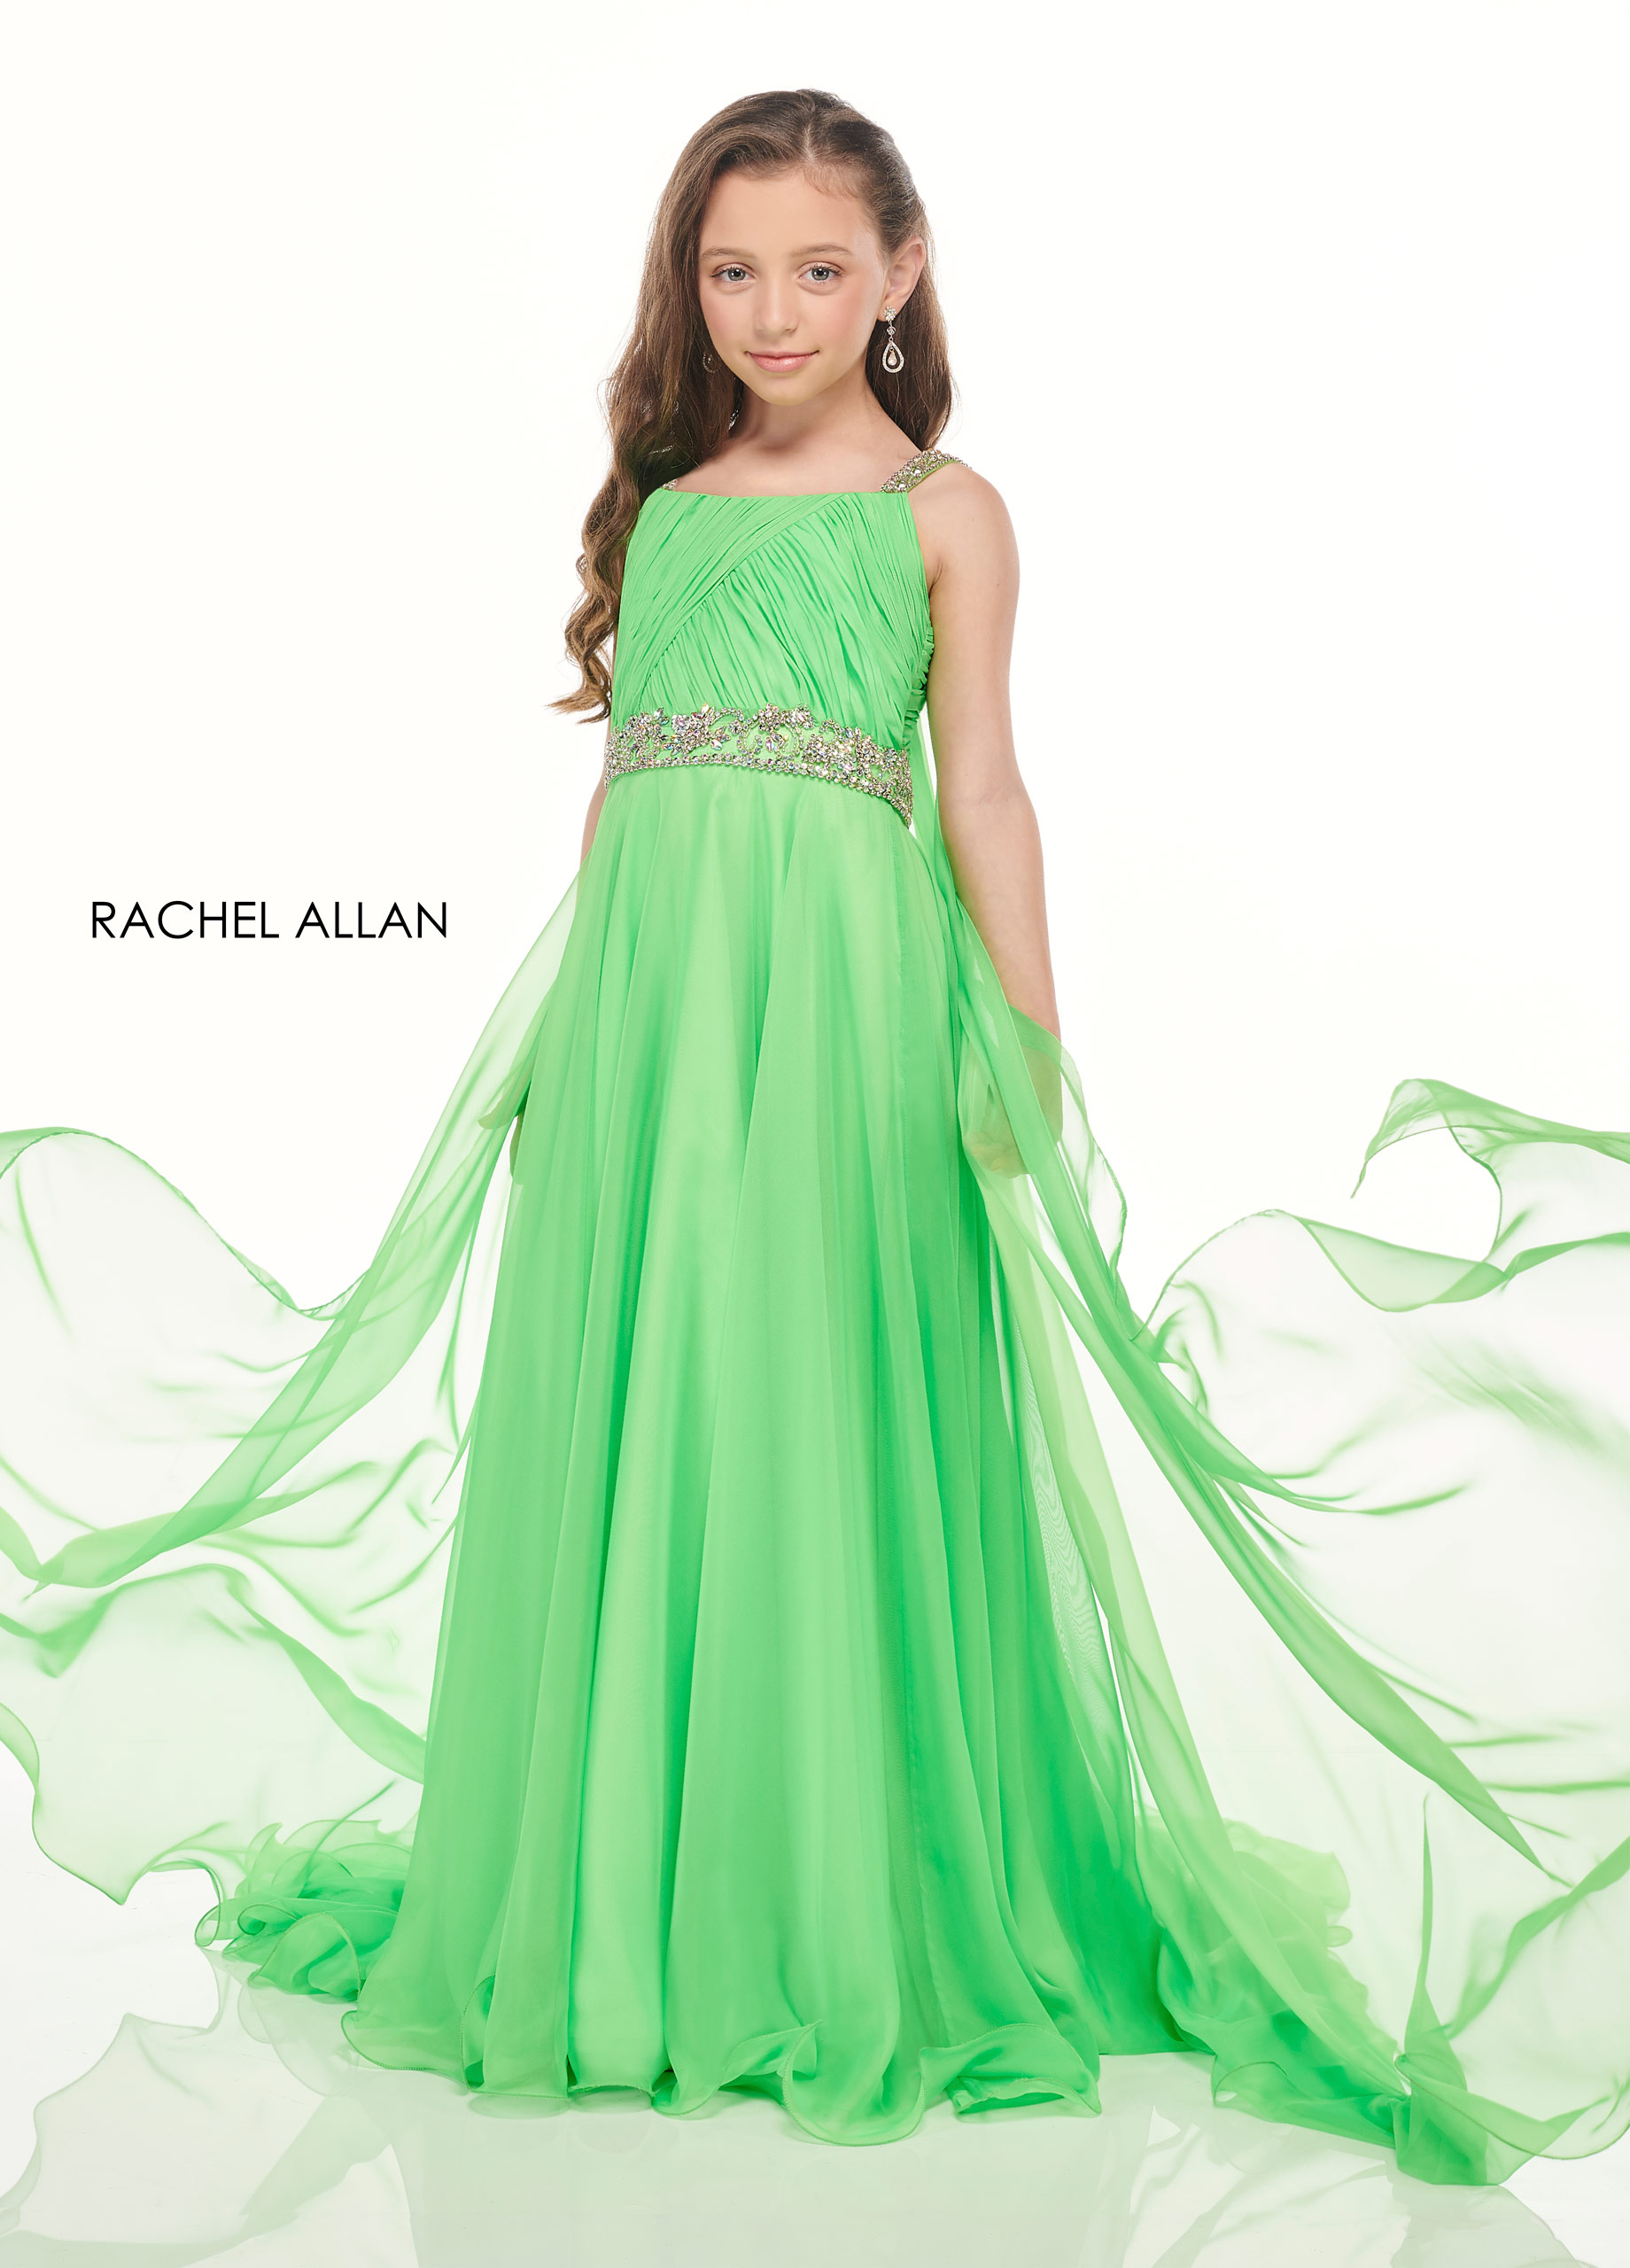 Scoop Neck A-Line Little Girl Pageant Dresses in Green Color